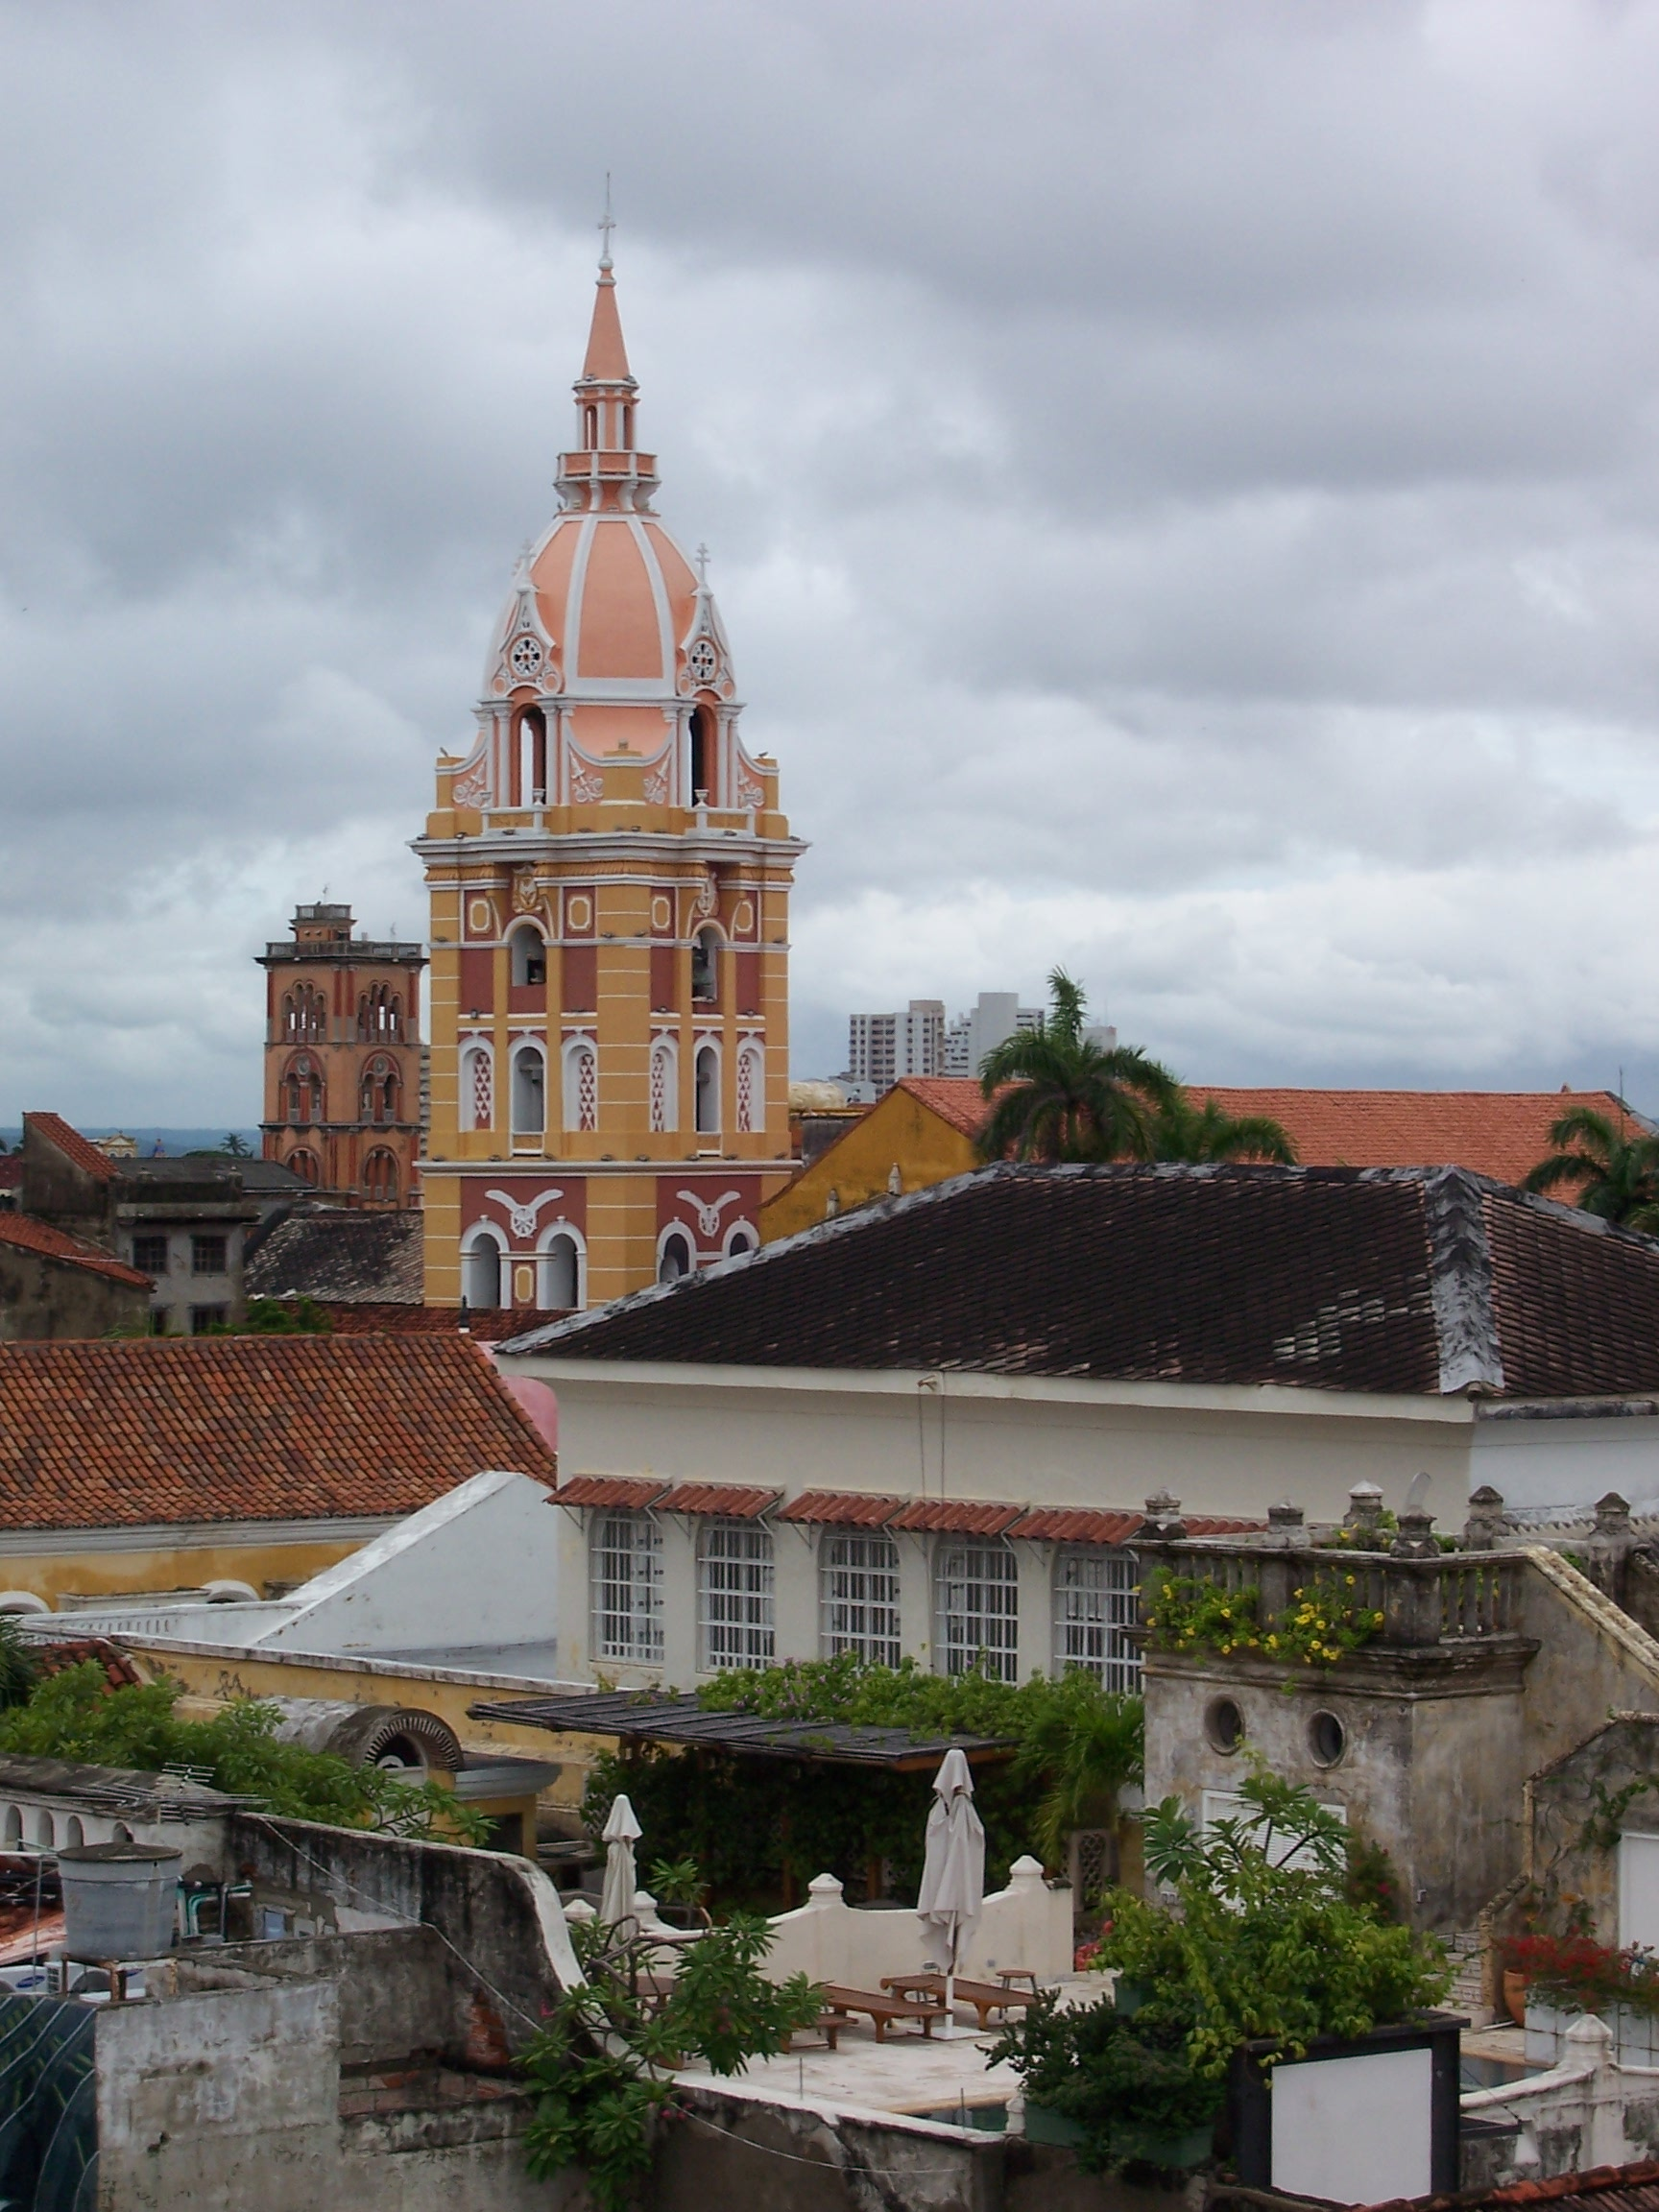 Striking architecture in the Historic Center Cartagena Colombia